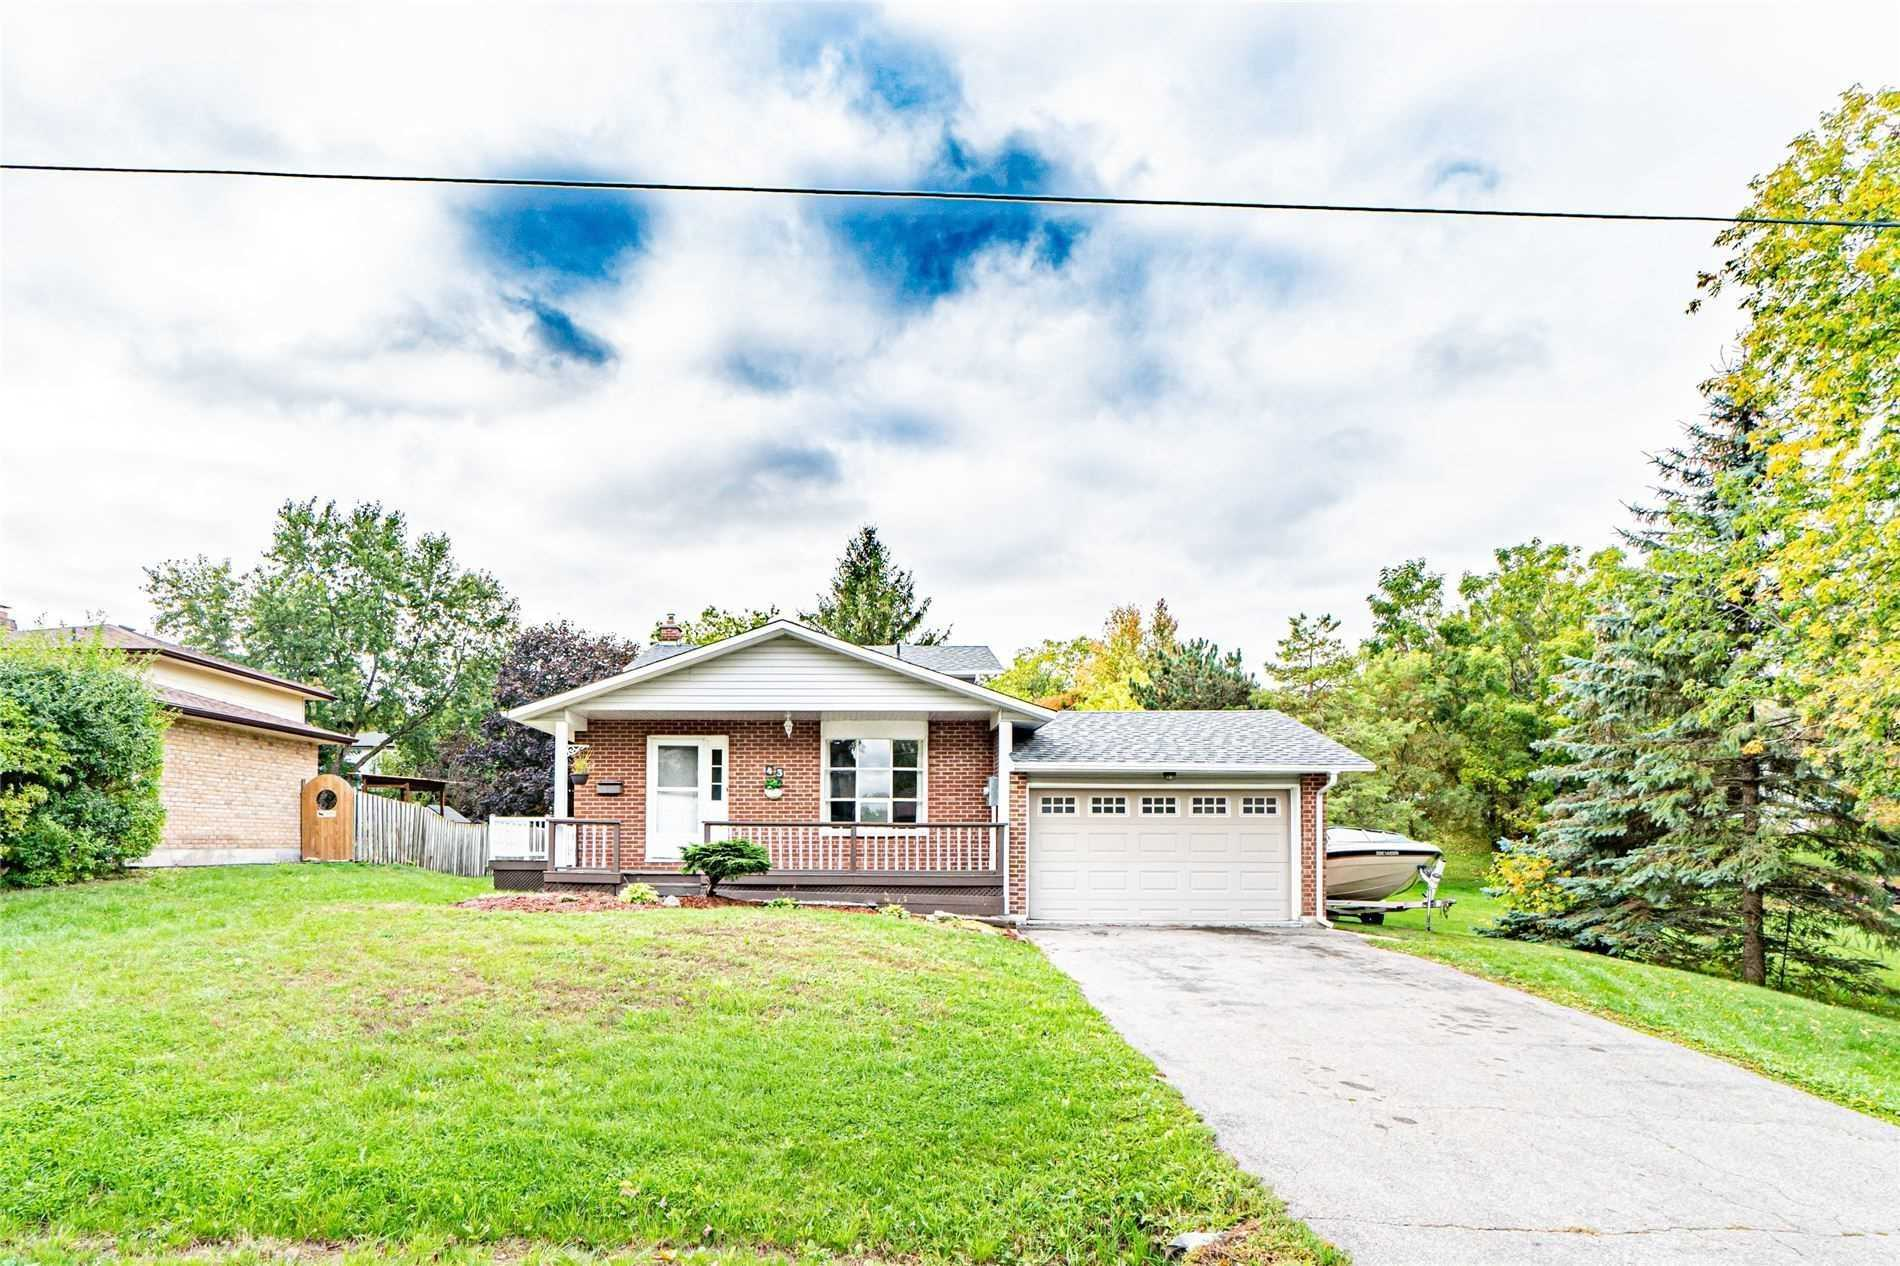 pictures of house for sale MLS: N4621111 located at 43 School St, East Gwillimbury L9N1K6